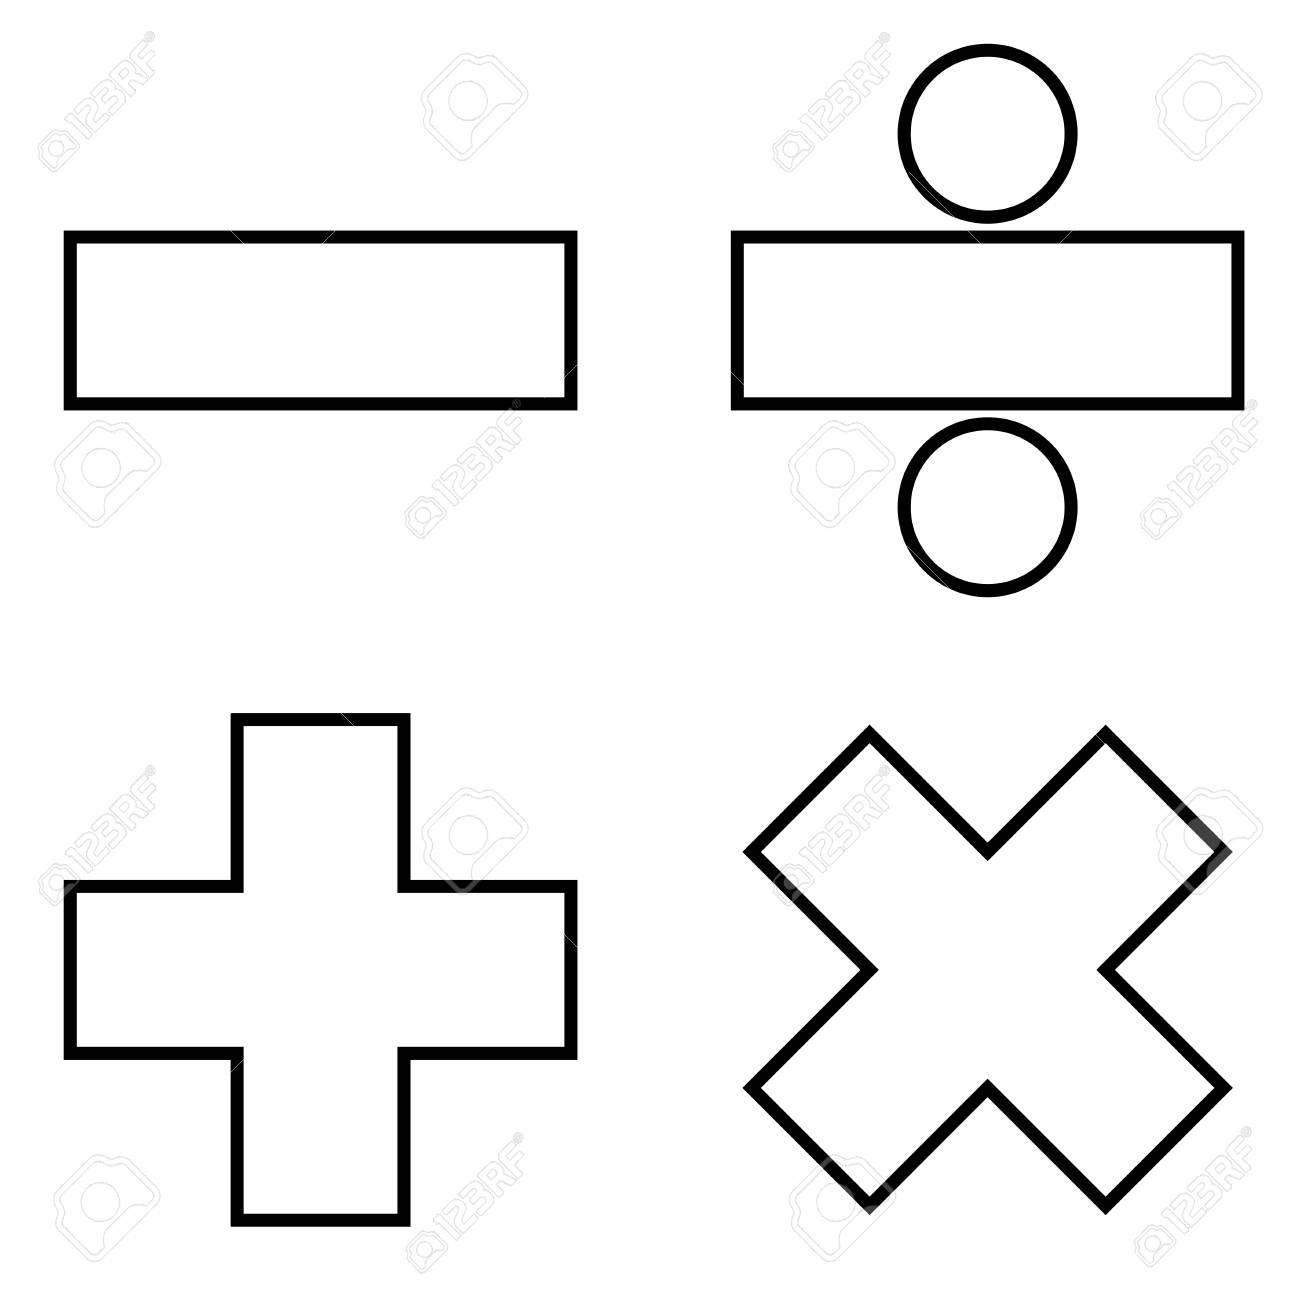 Math Signs Clipart Black And White